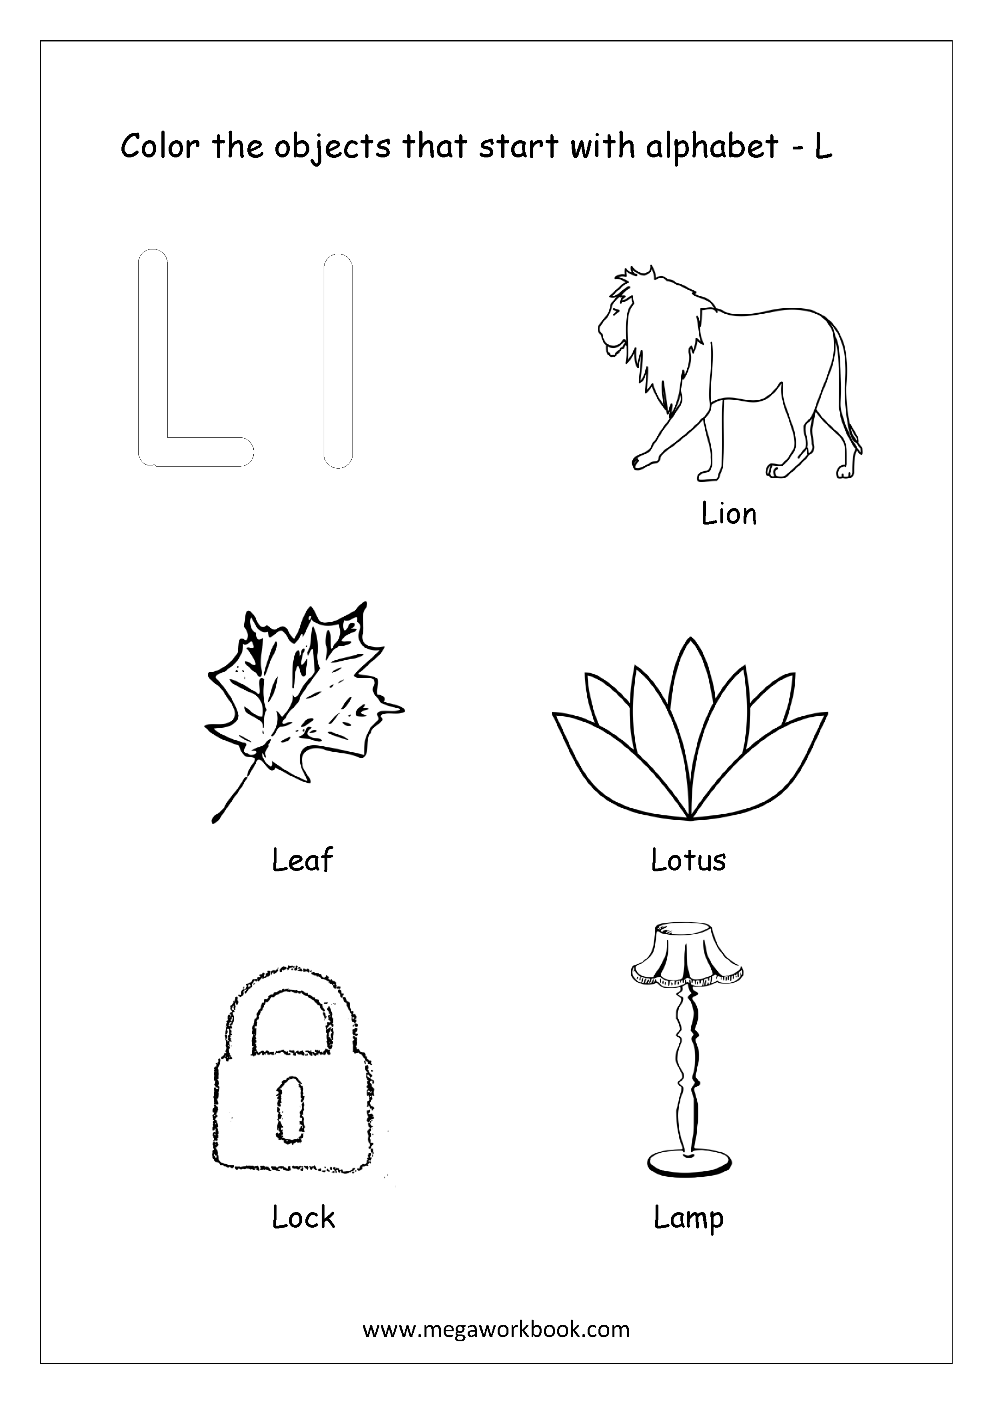 coloring letter l objects 6 best printable letter s activities printableecom coloring letter objects l